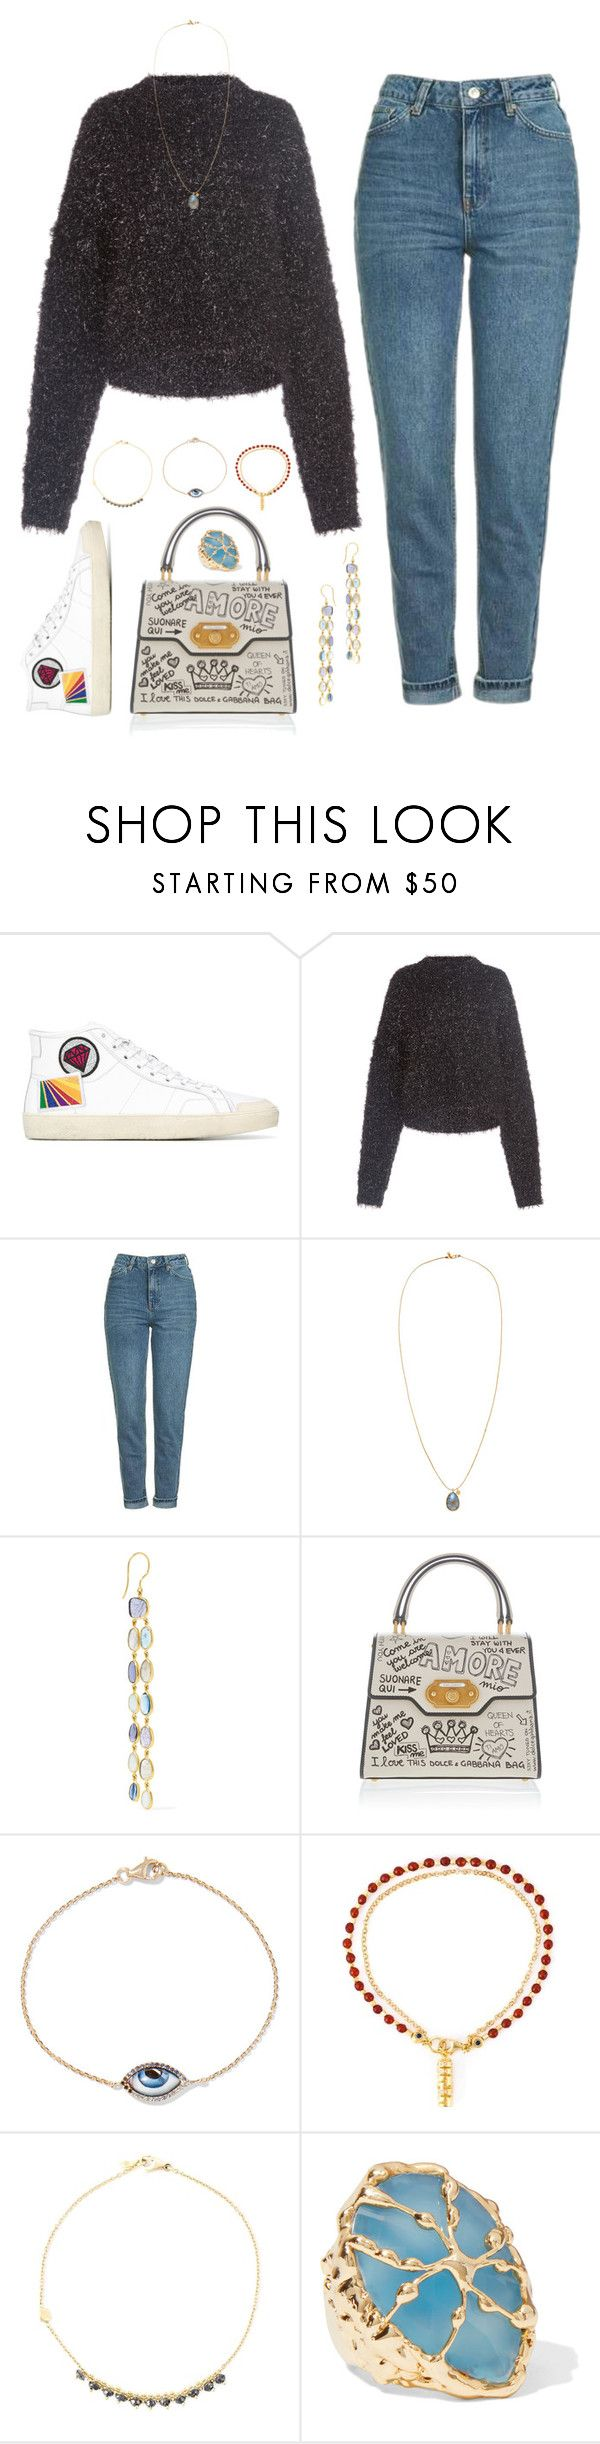 """""""LOCATION"""" by anaandpizza ❤ liked on Polyvore featuring Yves Saint Laurent, Isabel Marant, Topshop, Pippa Small, Dolce&Gabbana, lito, Astley Clarke, Natasha Collis and Rosantica"""